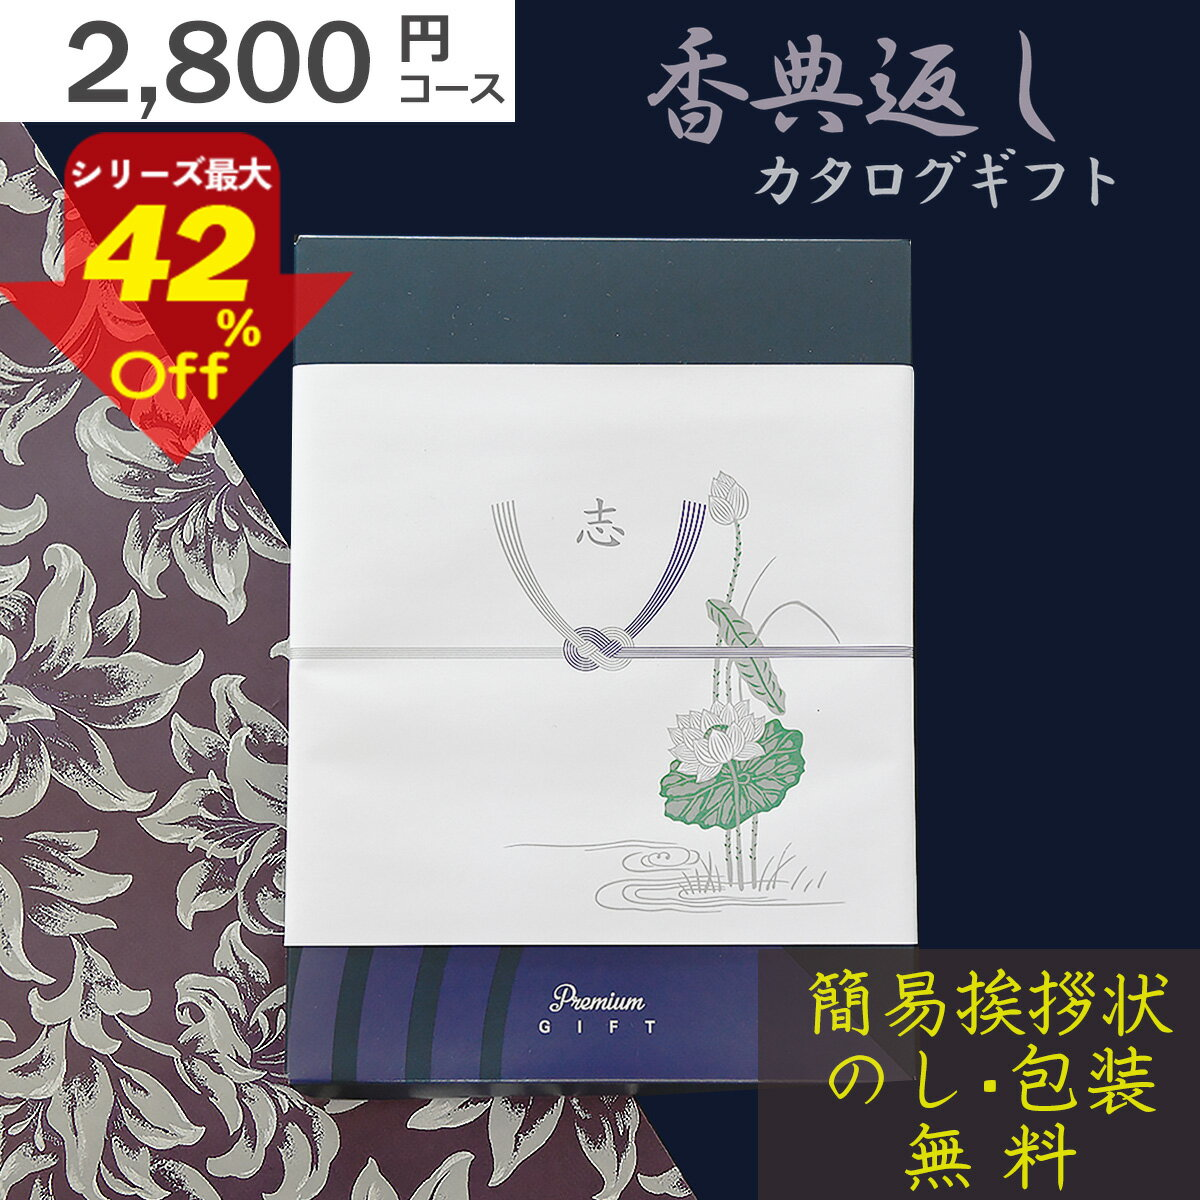 26%OFF! 香典返し カタログギフト [弔事...の商品画像